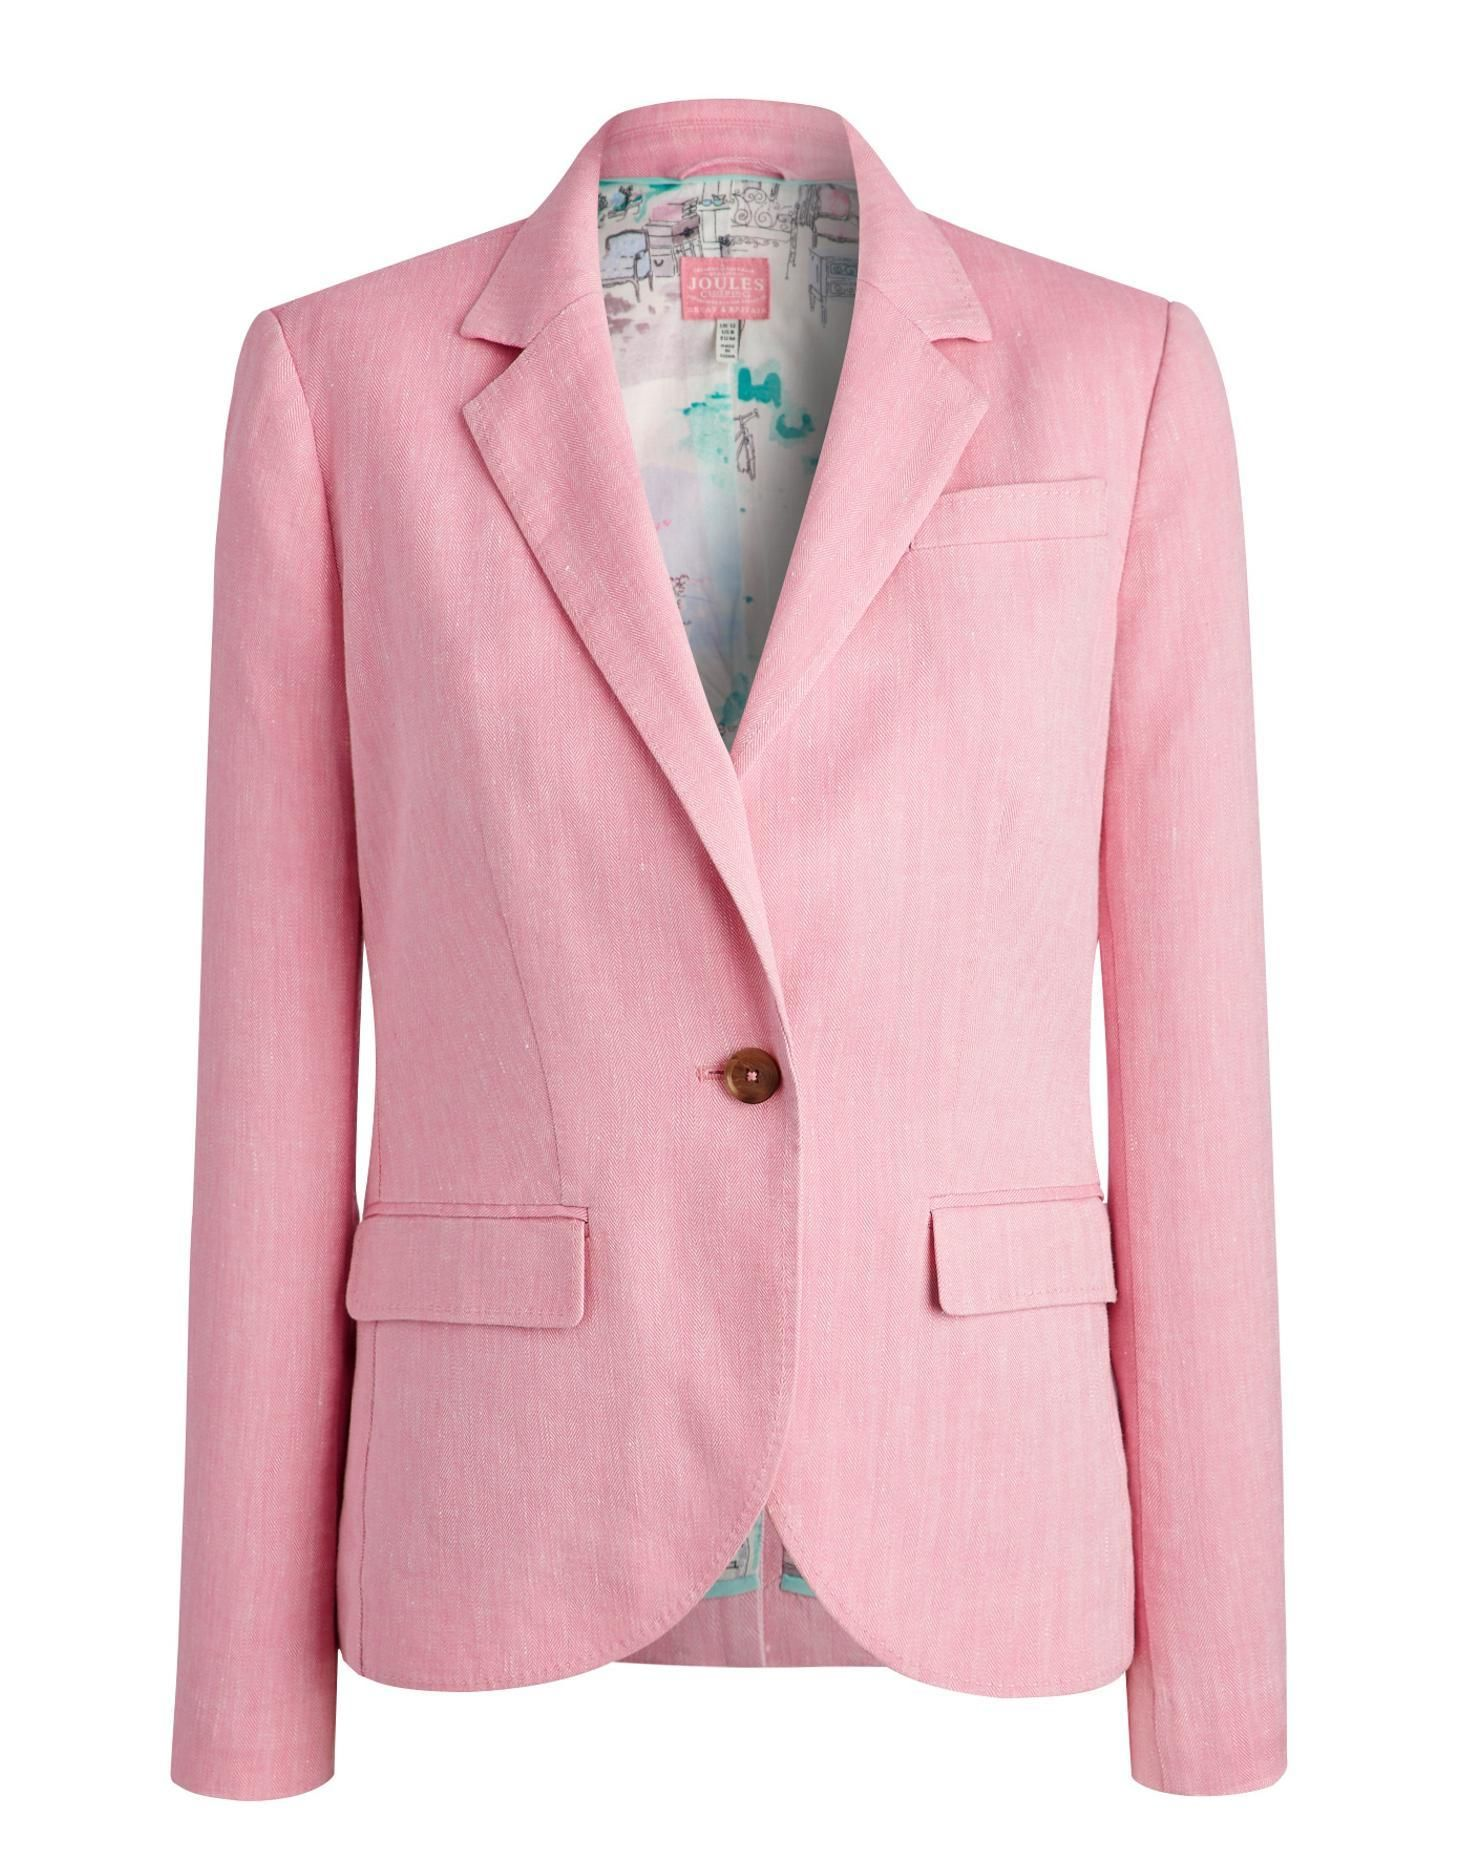 Joules Womens Linen Blazer, Pretty Pink. This soft washed linen ...